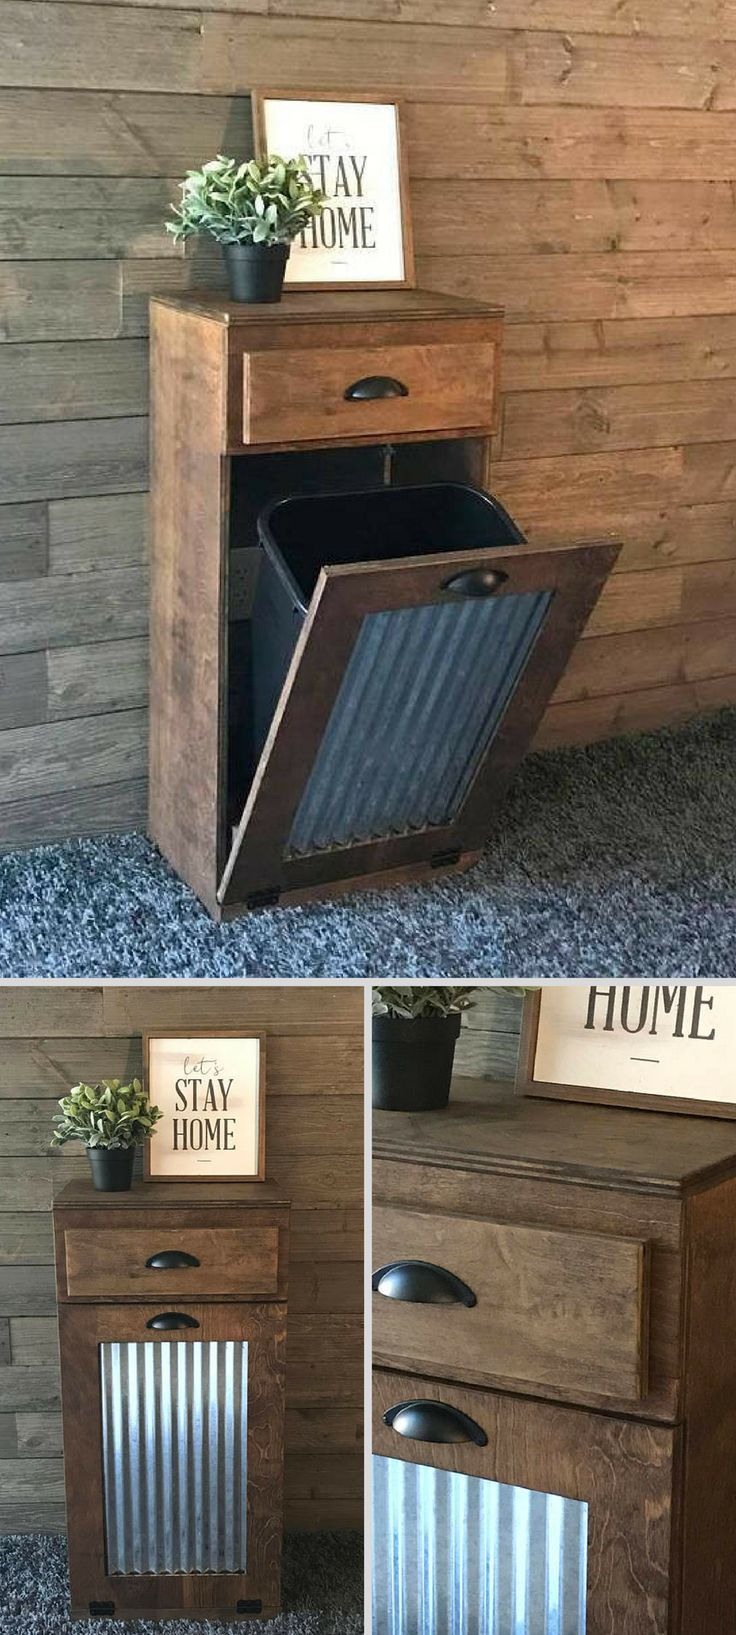 This is exactly what I've been looking for.  A tilt out trash bin is so much better than a plain trash can. Love that this one has a drawer for storing trash bags. #farmhouse #ad #rustic